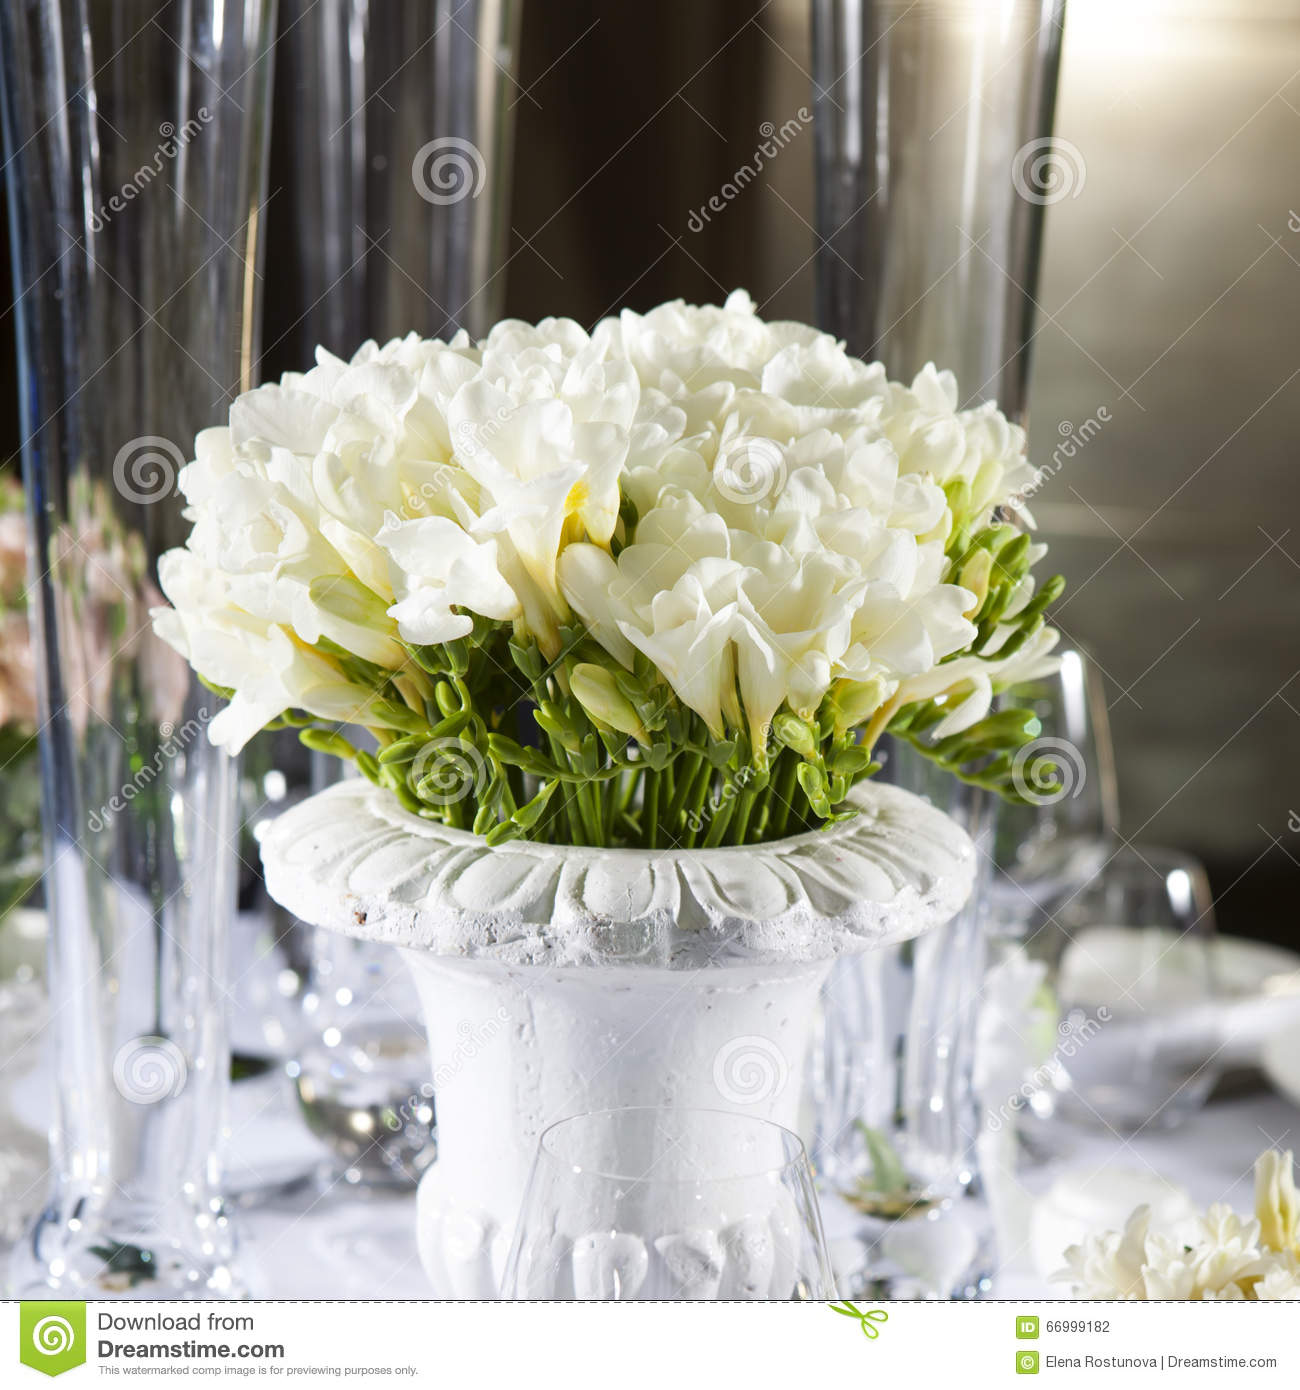 d coration de table de mariage bouquet de la fleur blanche de l 39 an mone photo stock image du. Black Bedroom Furniture Sets. Home Design Ideas